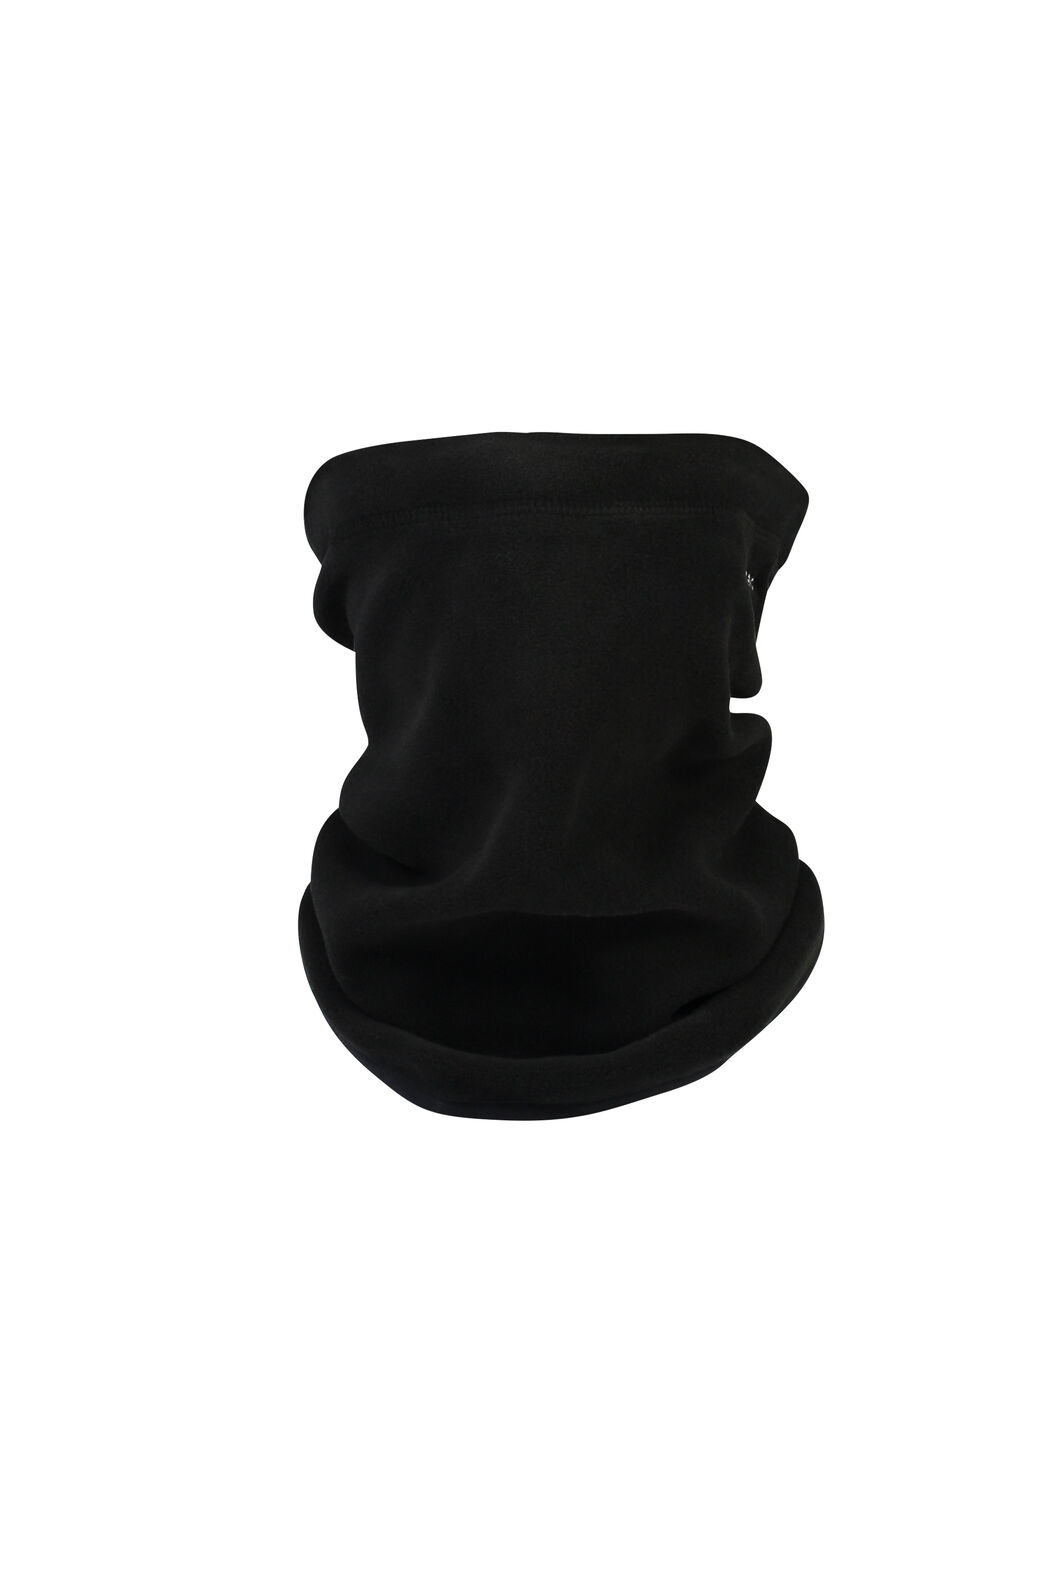 Macpac Kaka Polartec® Micro Fleece™ Neck Gaiter, Black, hi-res